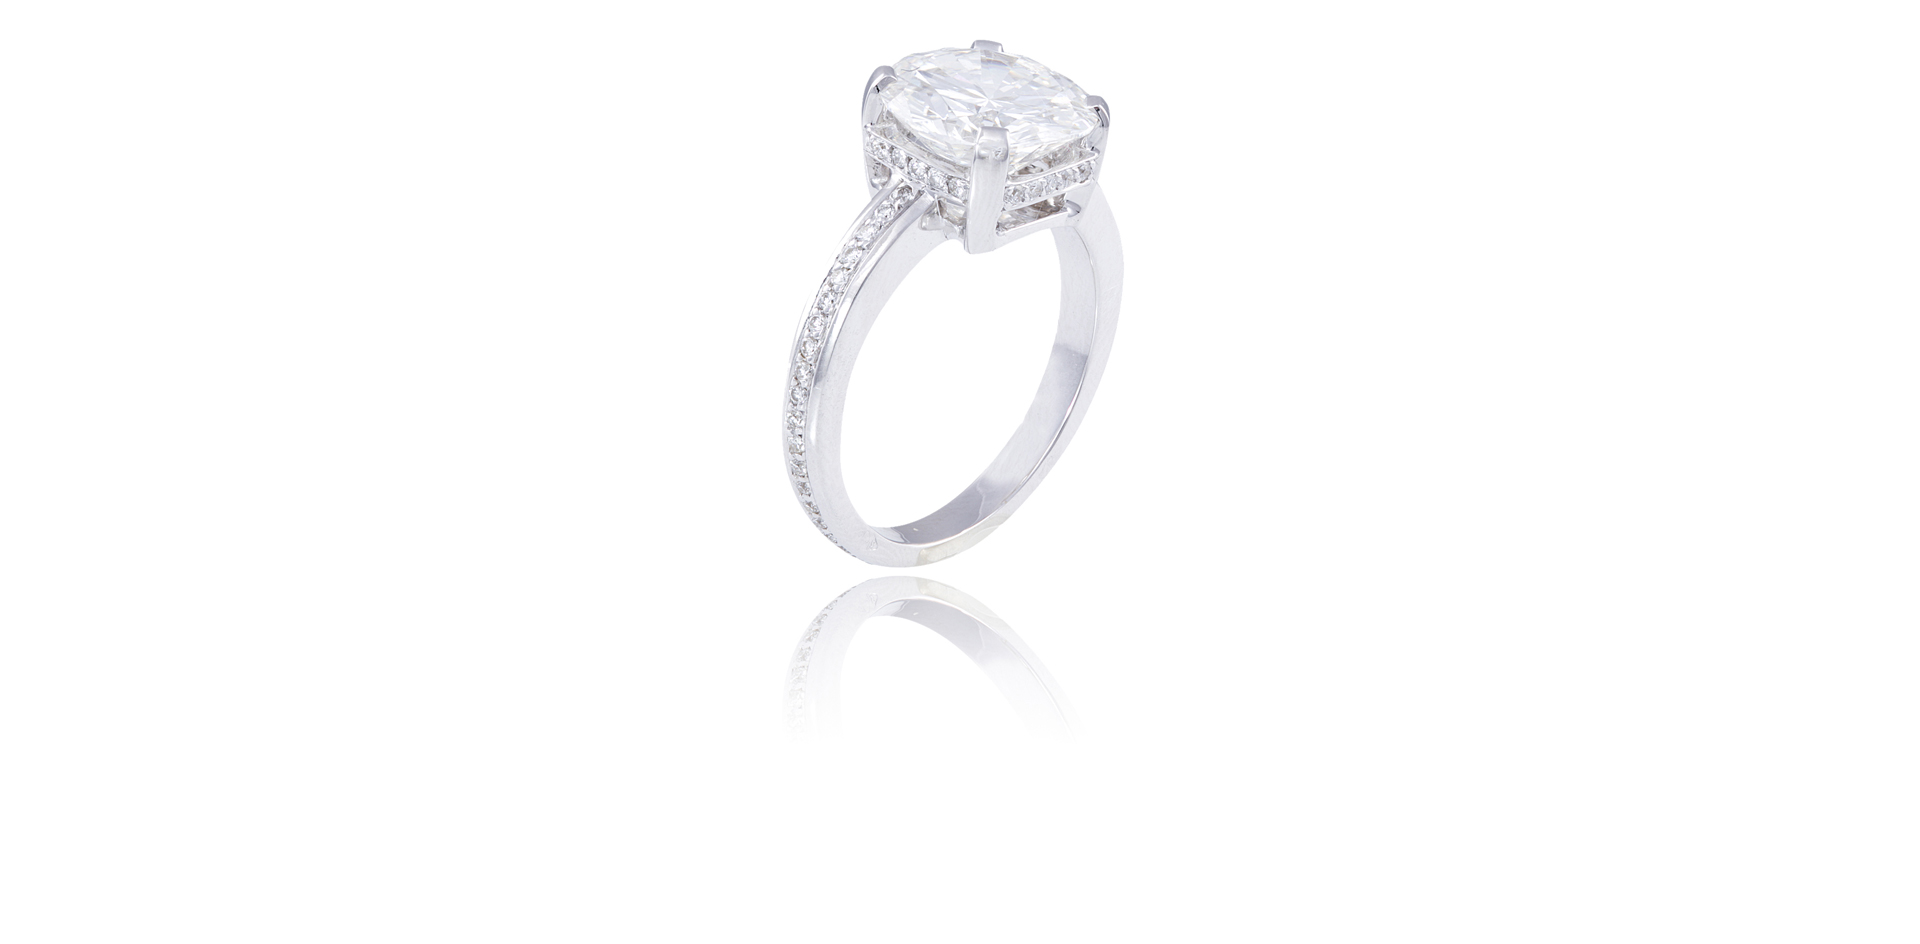 A IMPRESSIVE SINGLE-STONE DIAMOND RING - Sold For €77,000